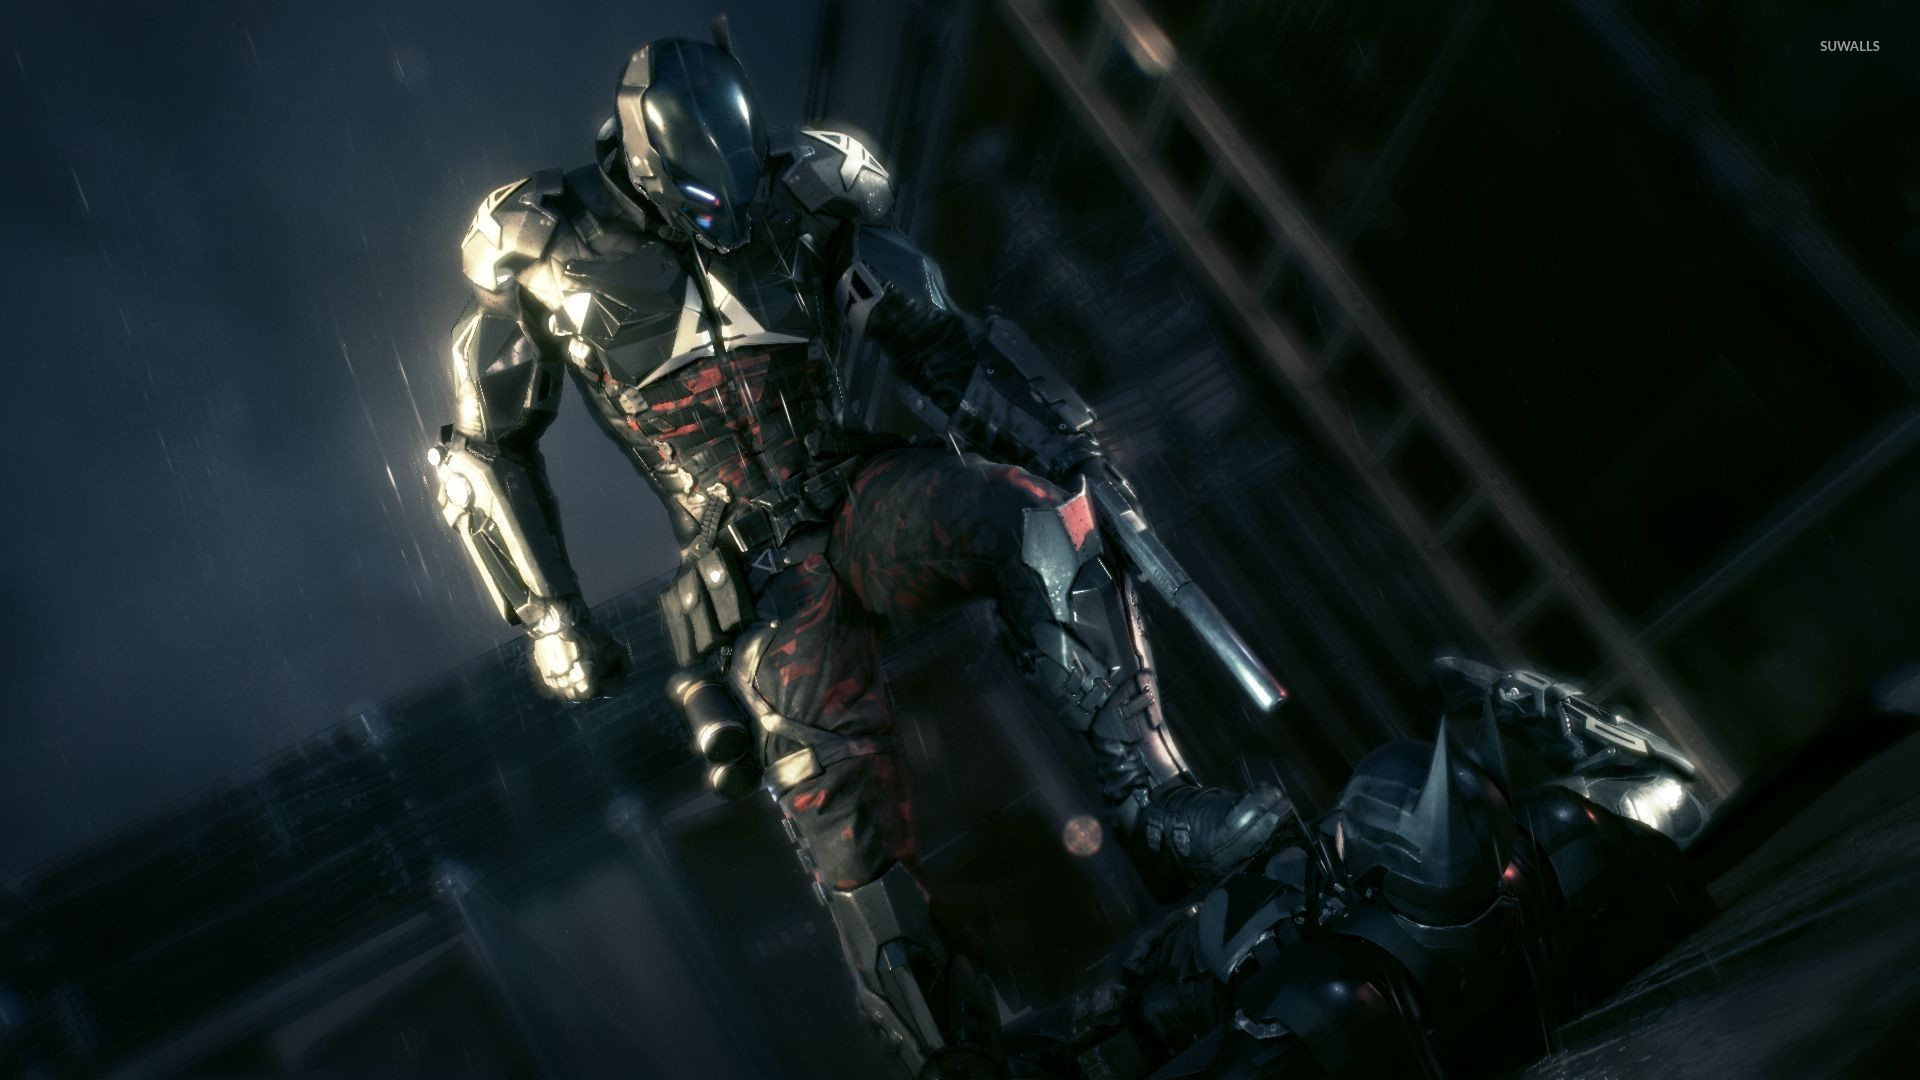 Batman Arkham Knight Skin Pack Available Free for Download DRM